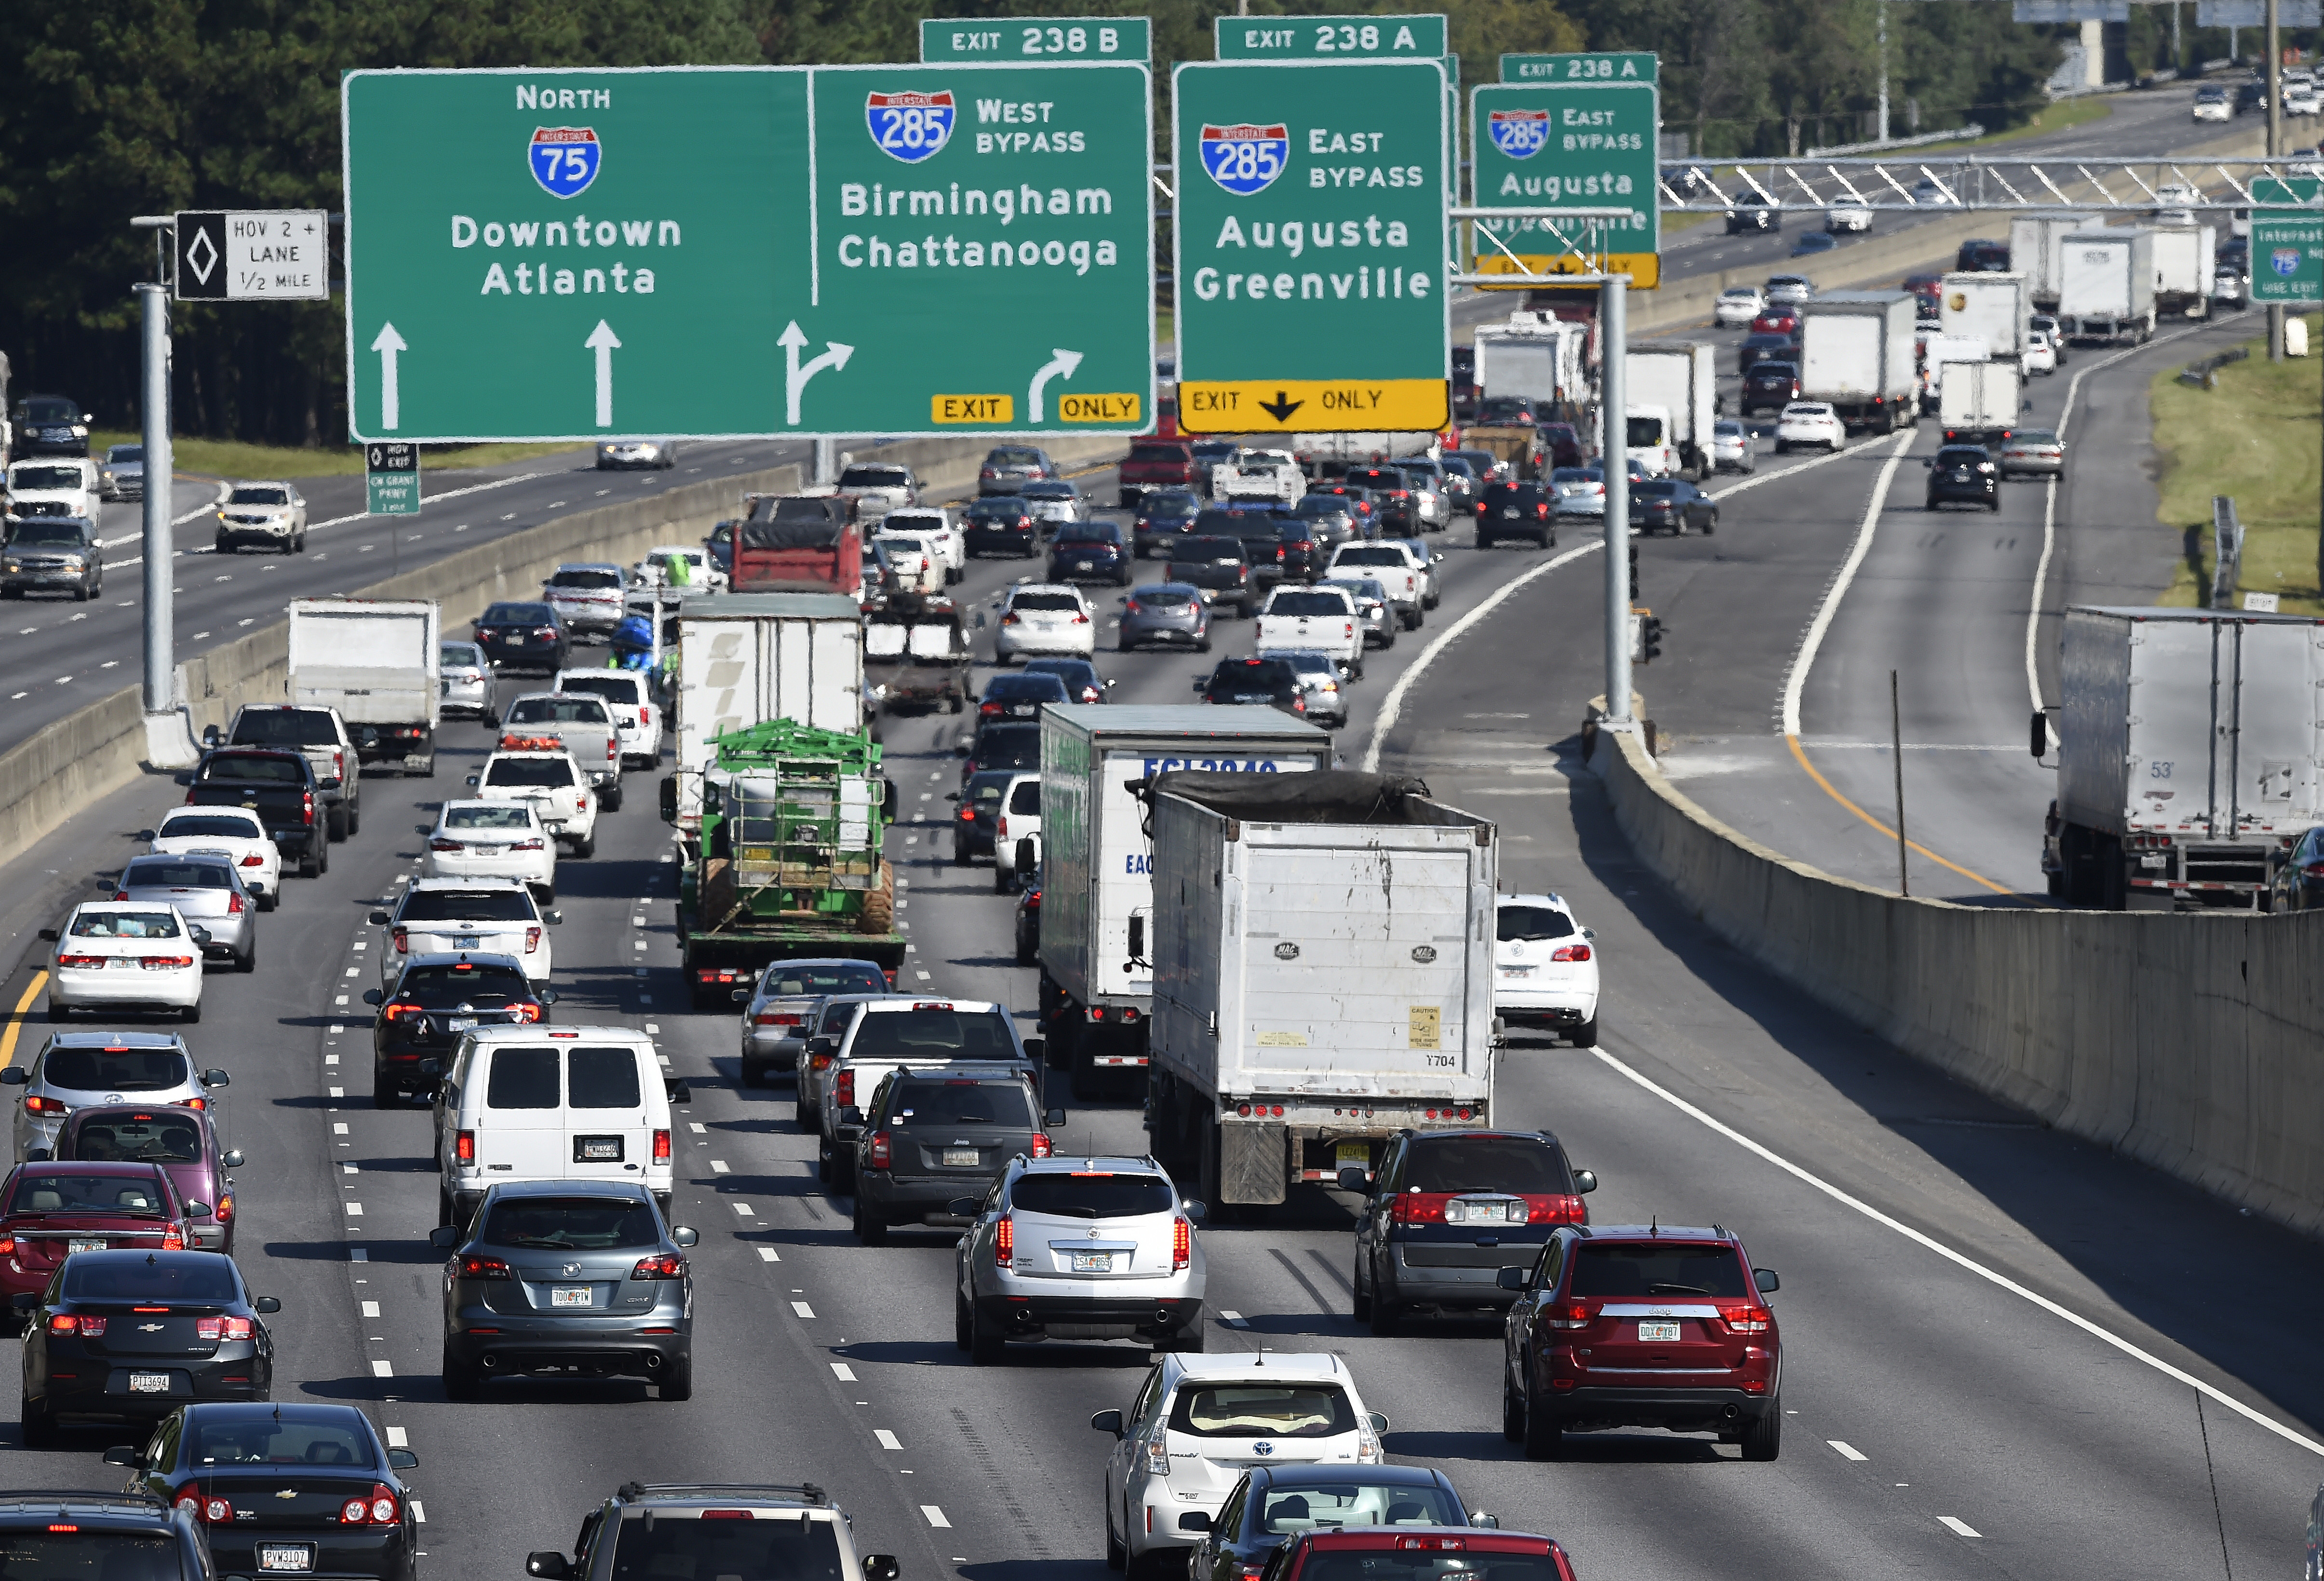 A busy Atlanta interstate with traffic in many lanes.